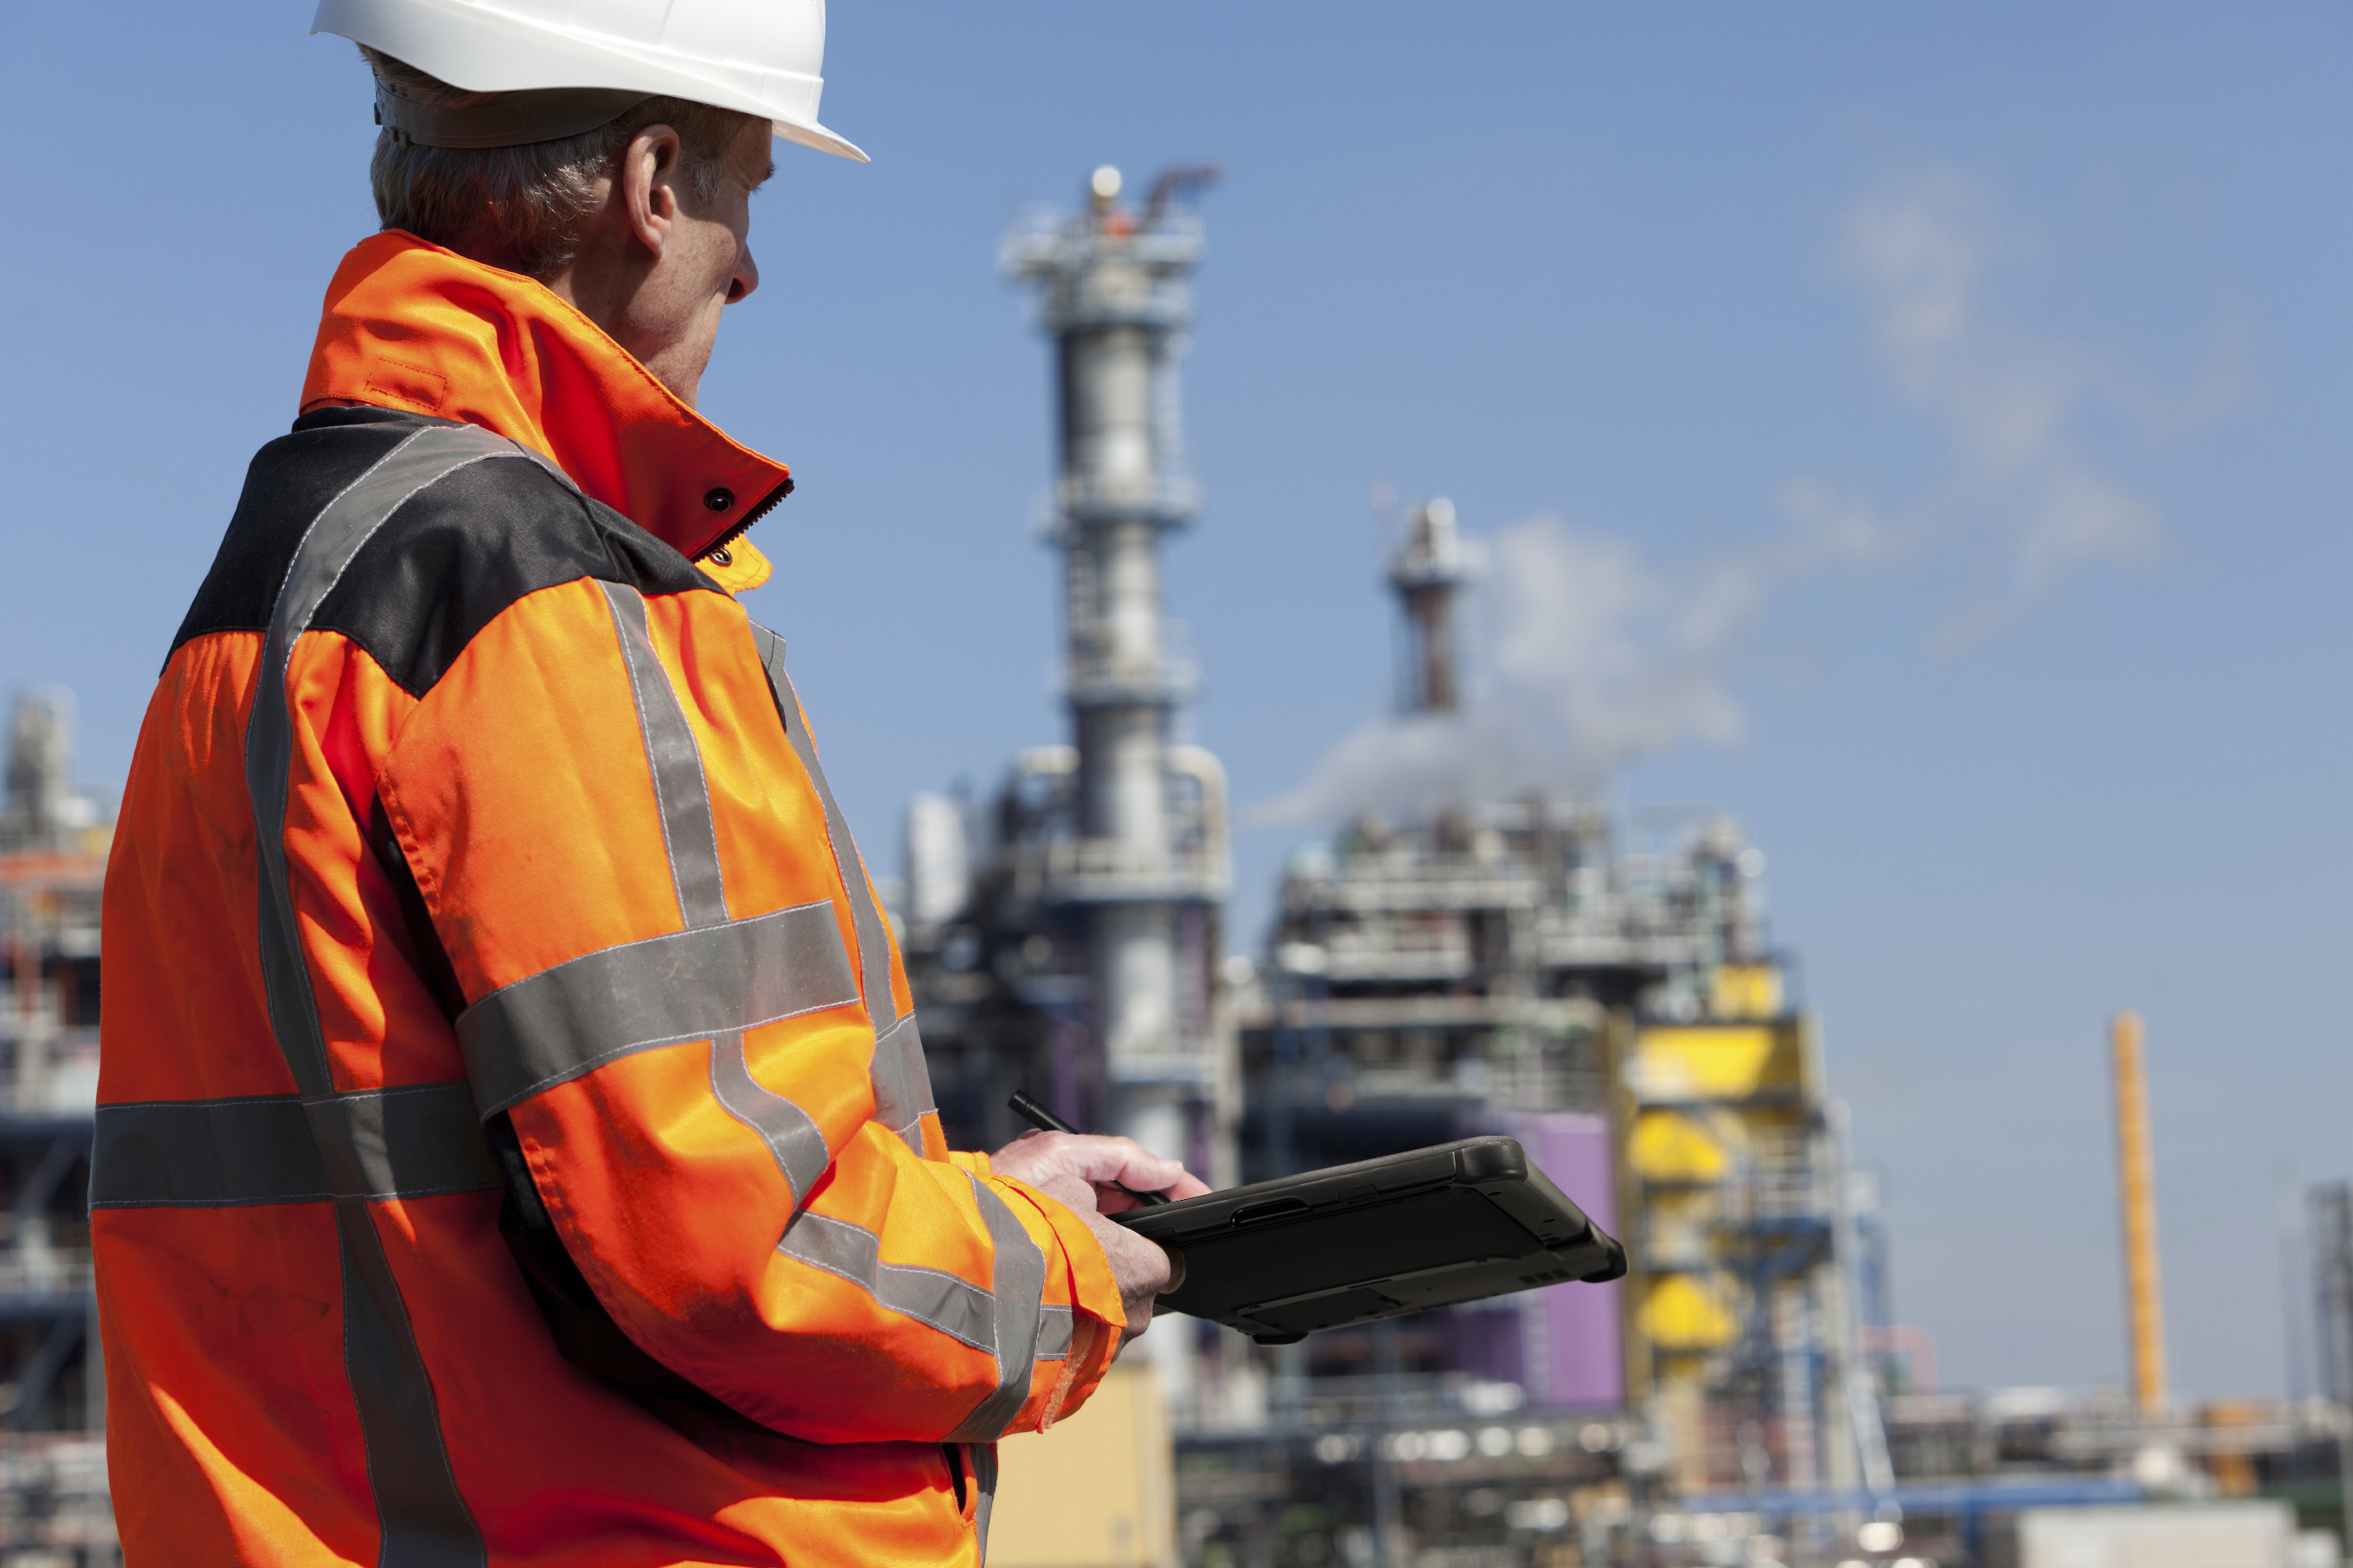 AR has potential to disrupt future oil and gas operational functions